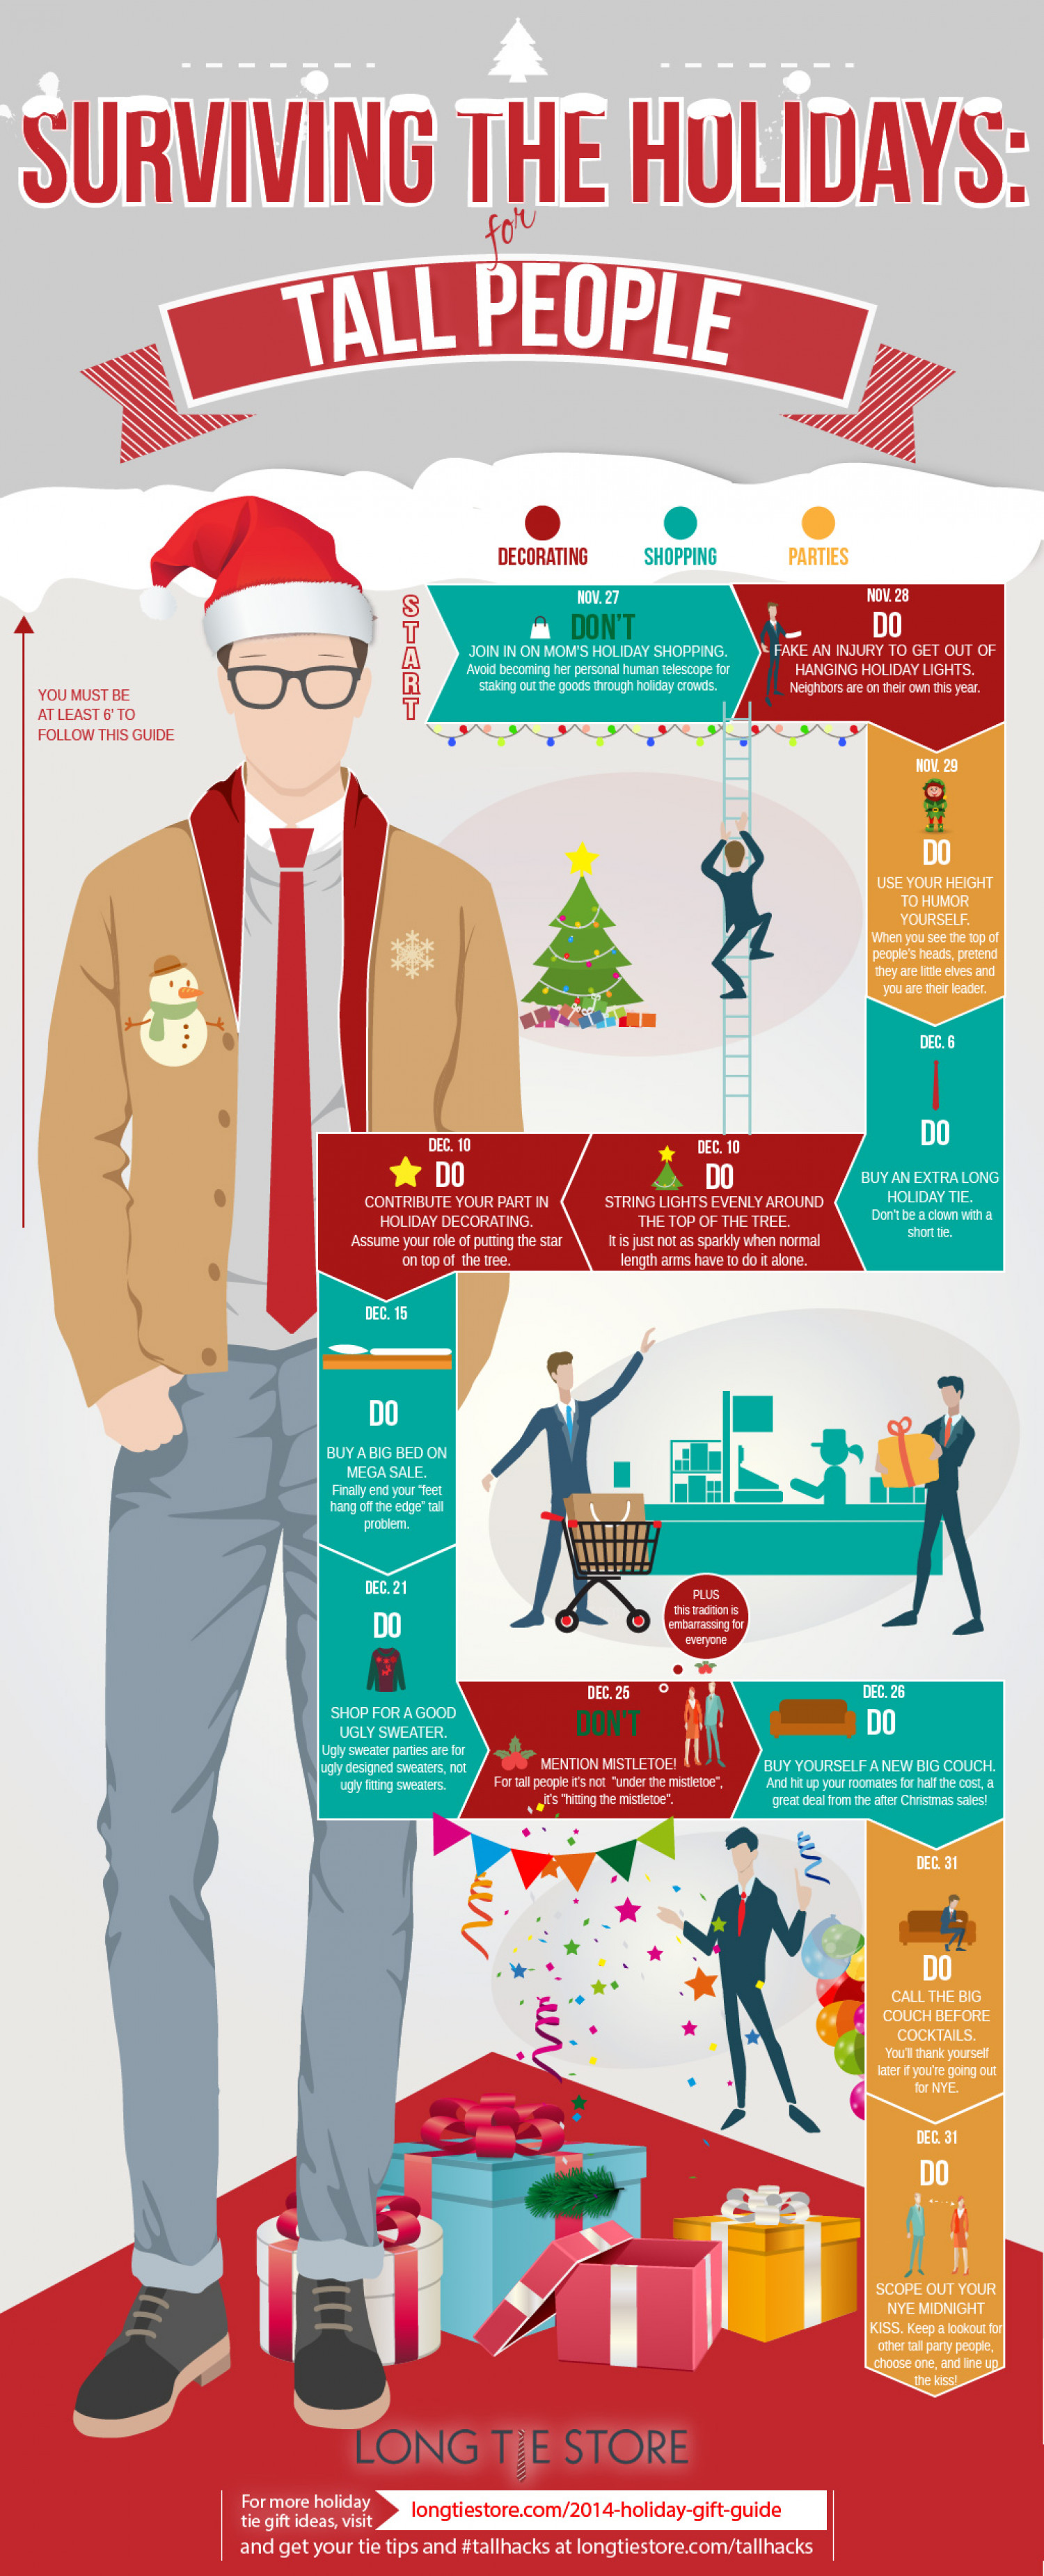 Surviving the Holidays for Tall People Infographic